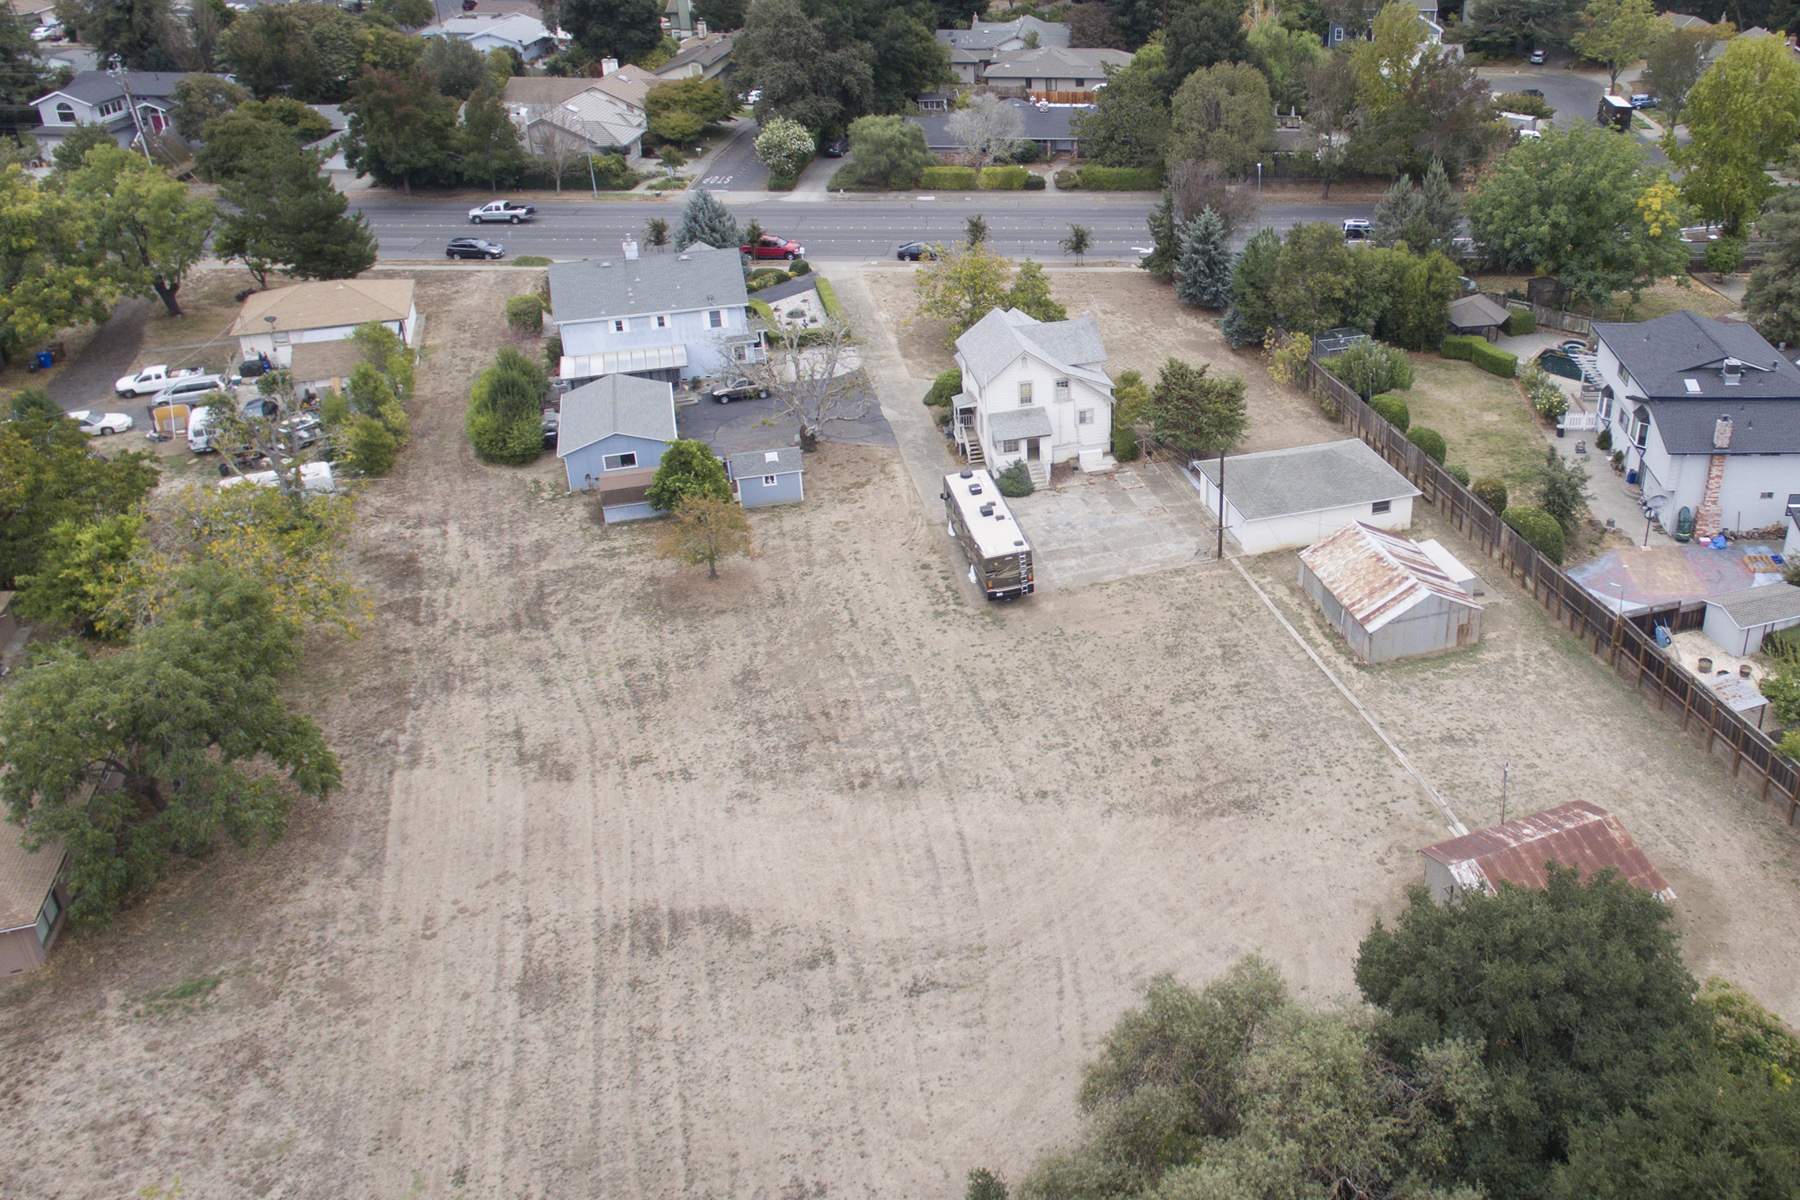 Property For Sale at 2588 Redwood Rd, Napa, CA 94558